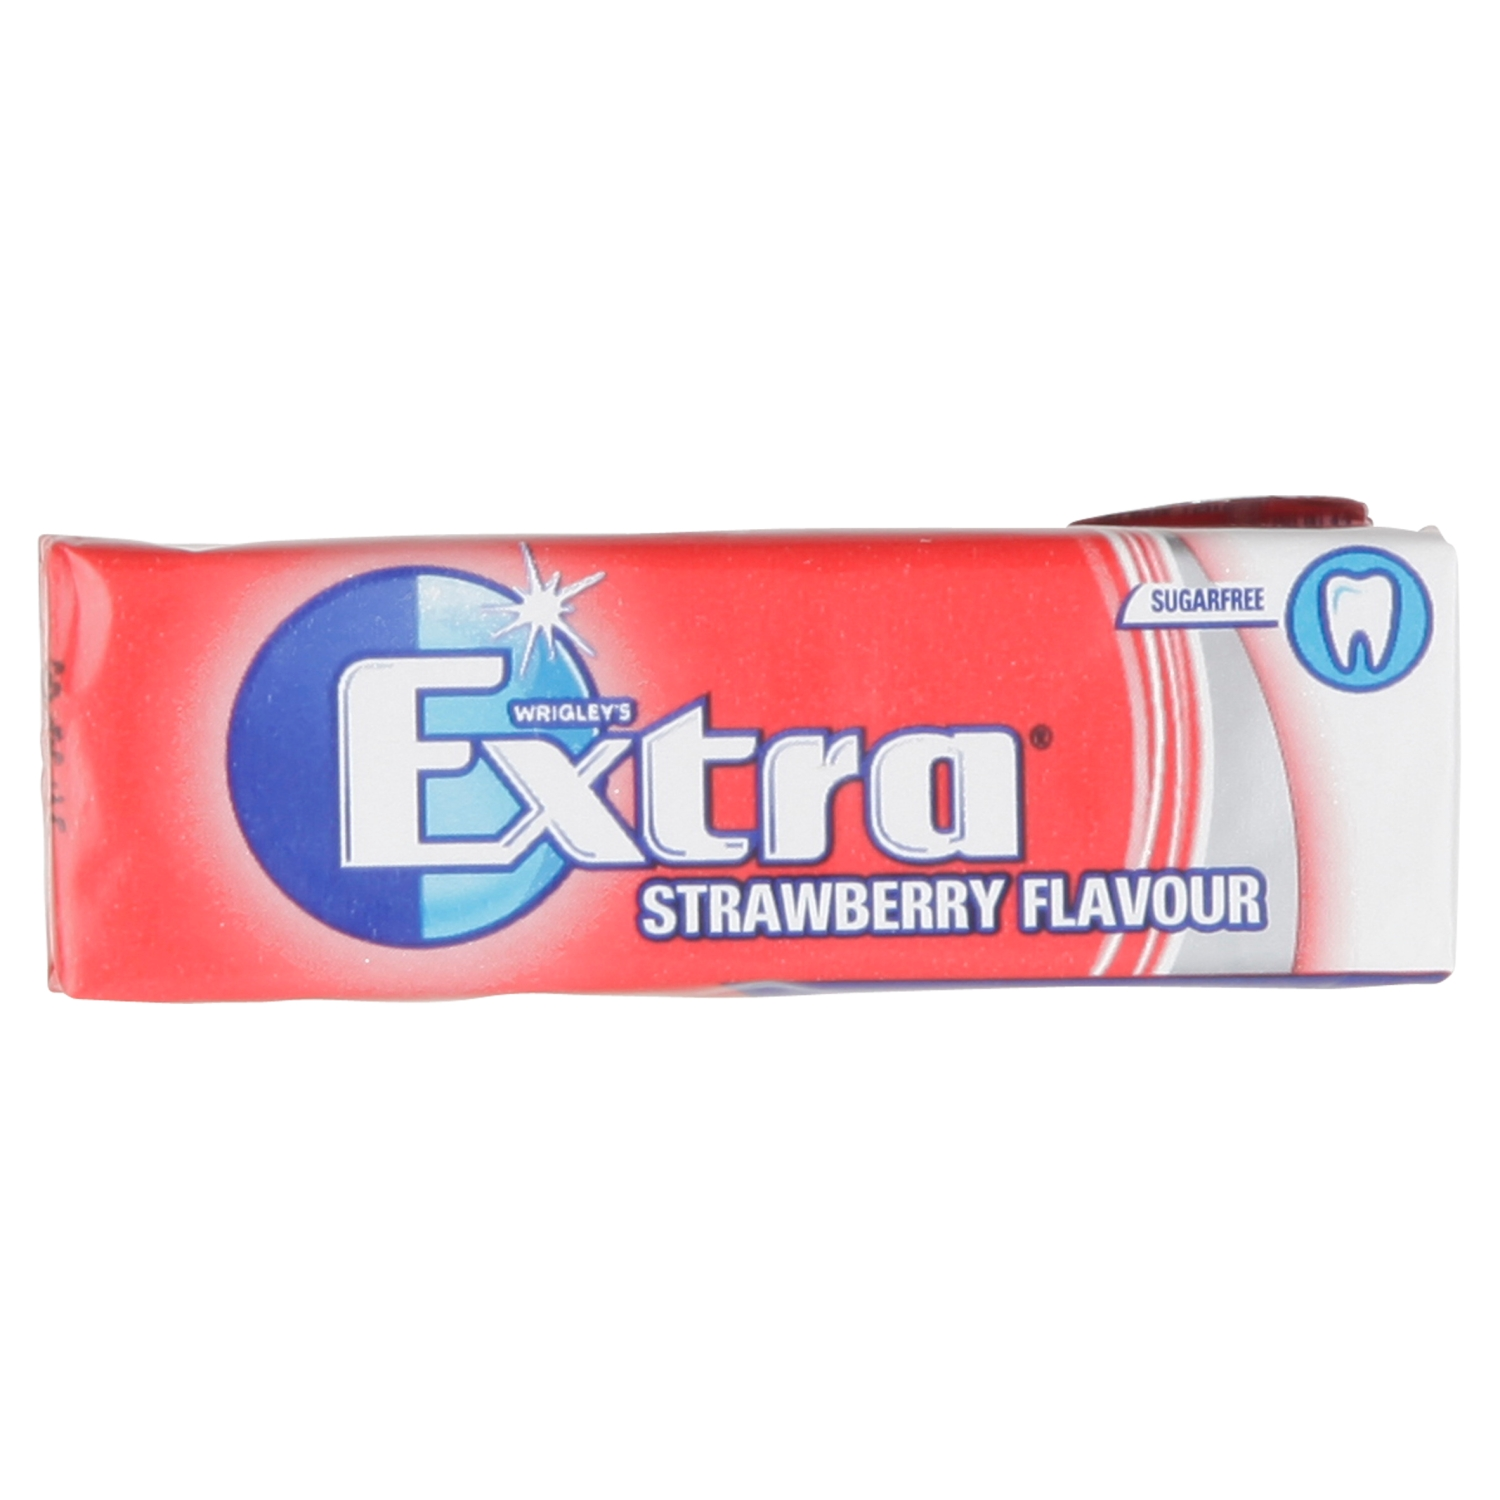 Wrigley's Extra Strawberry Flavour Sugarfree Chewing Gum 10 Pieces 14g